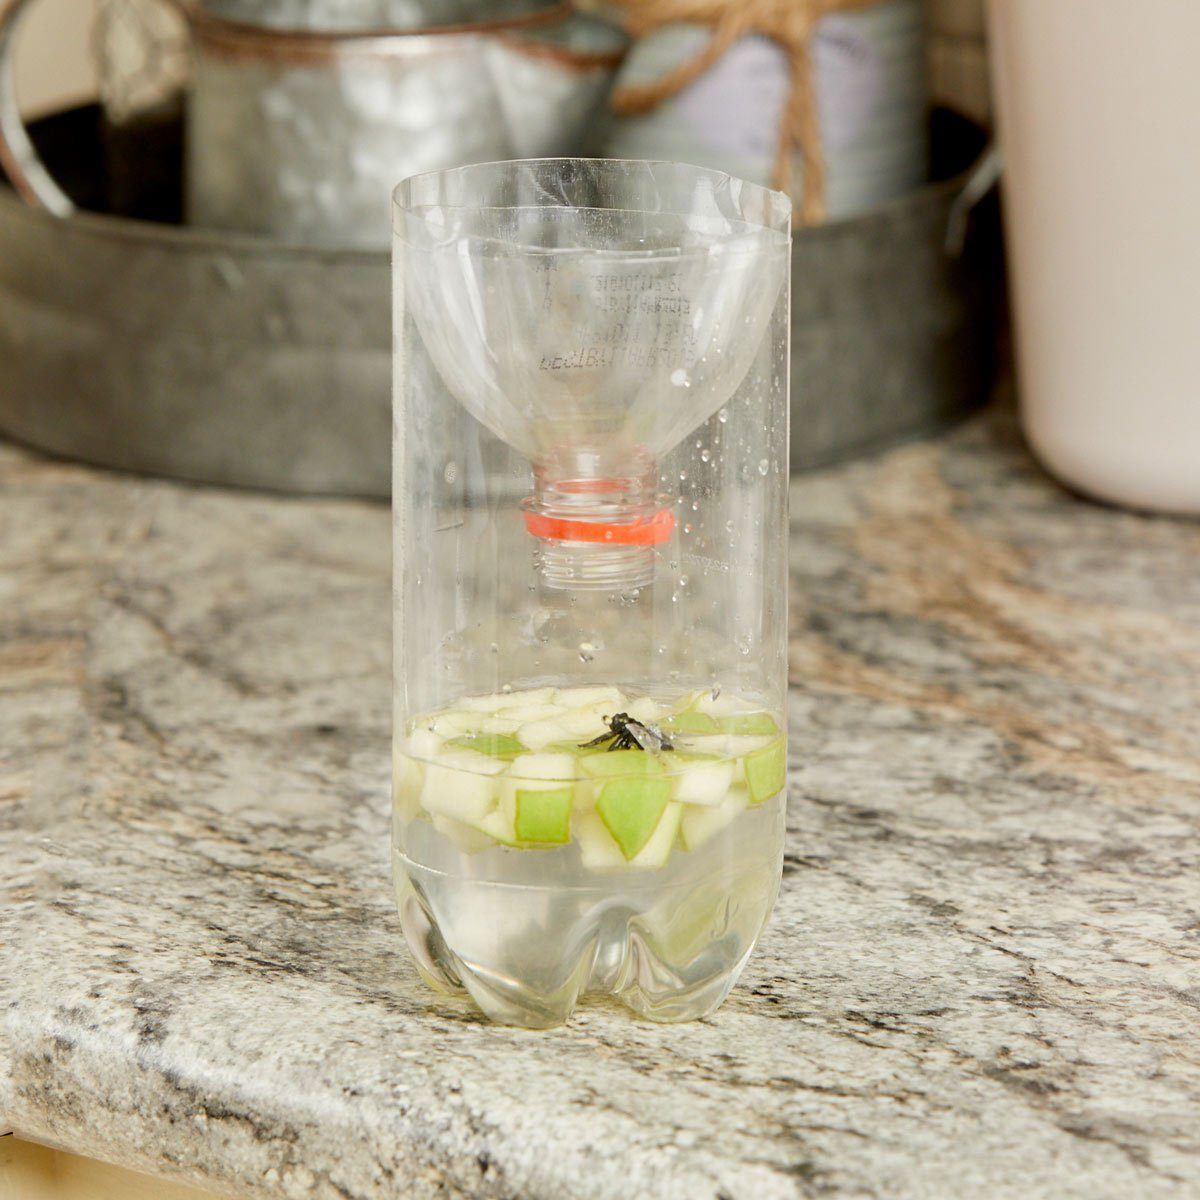 HH handy hint soda bottle fly trap apple chunks